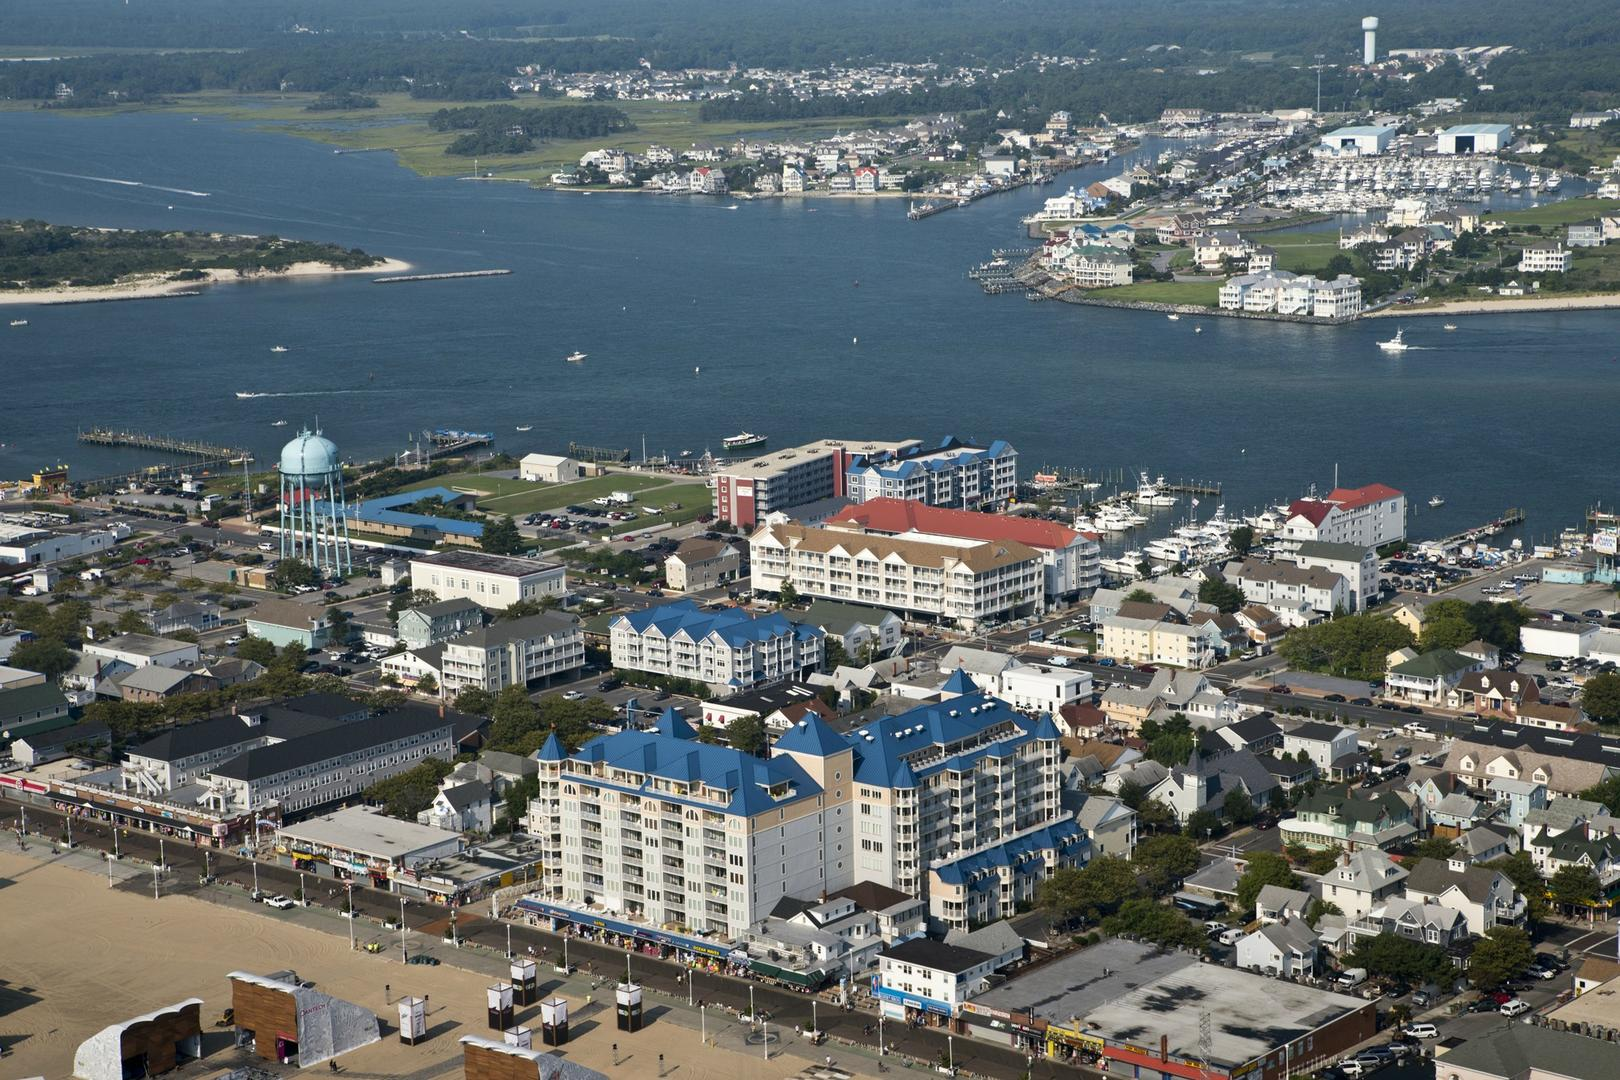 Aerial View of Belmont Towers in Downtown Ocean City